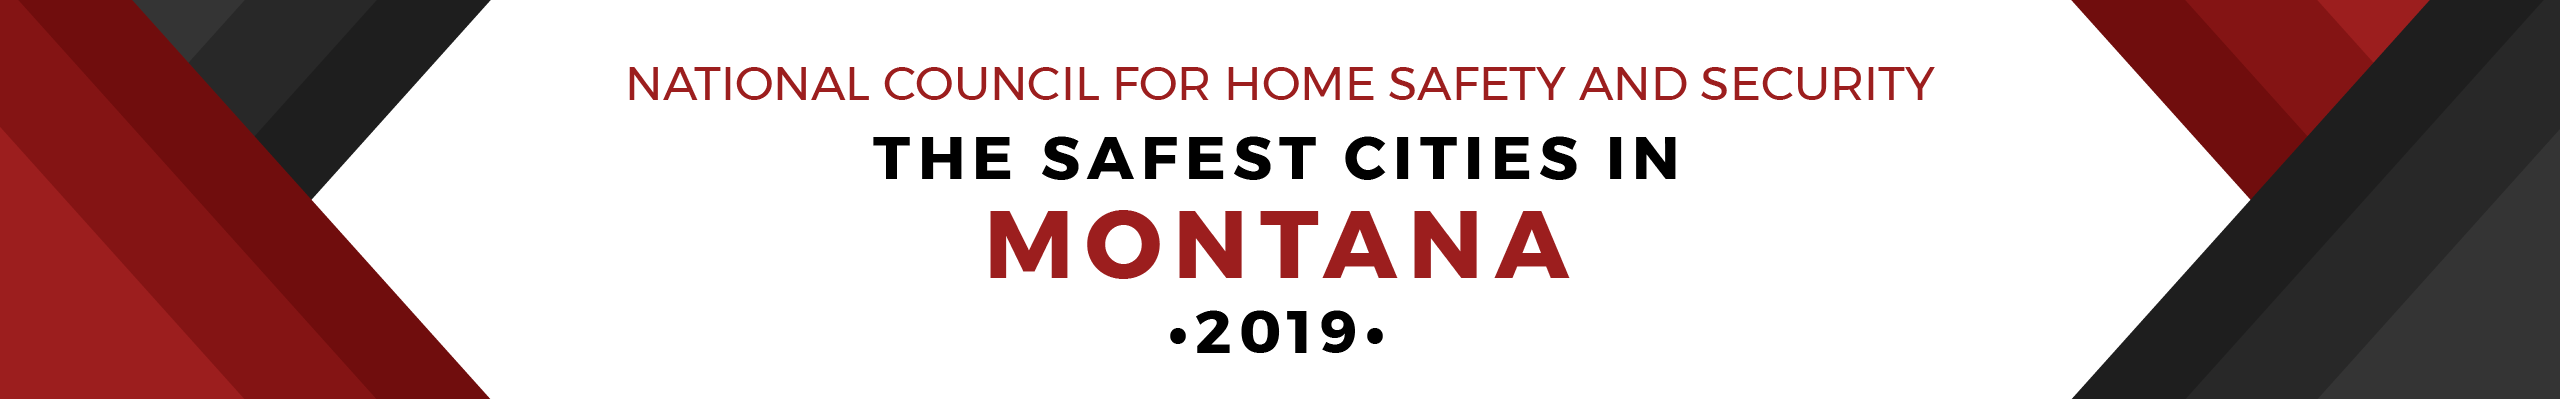 Safest Cities Montana - header